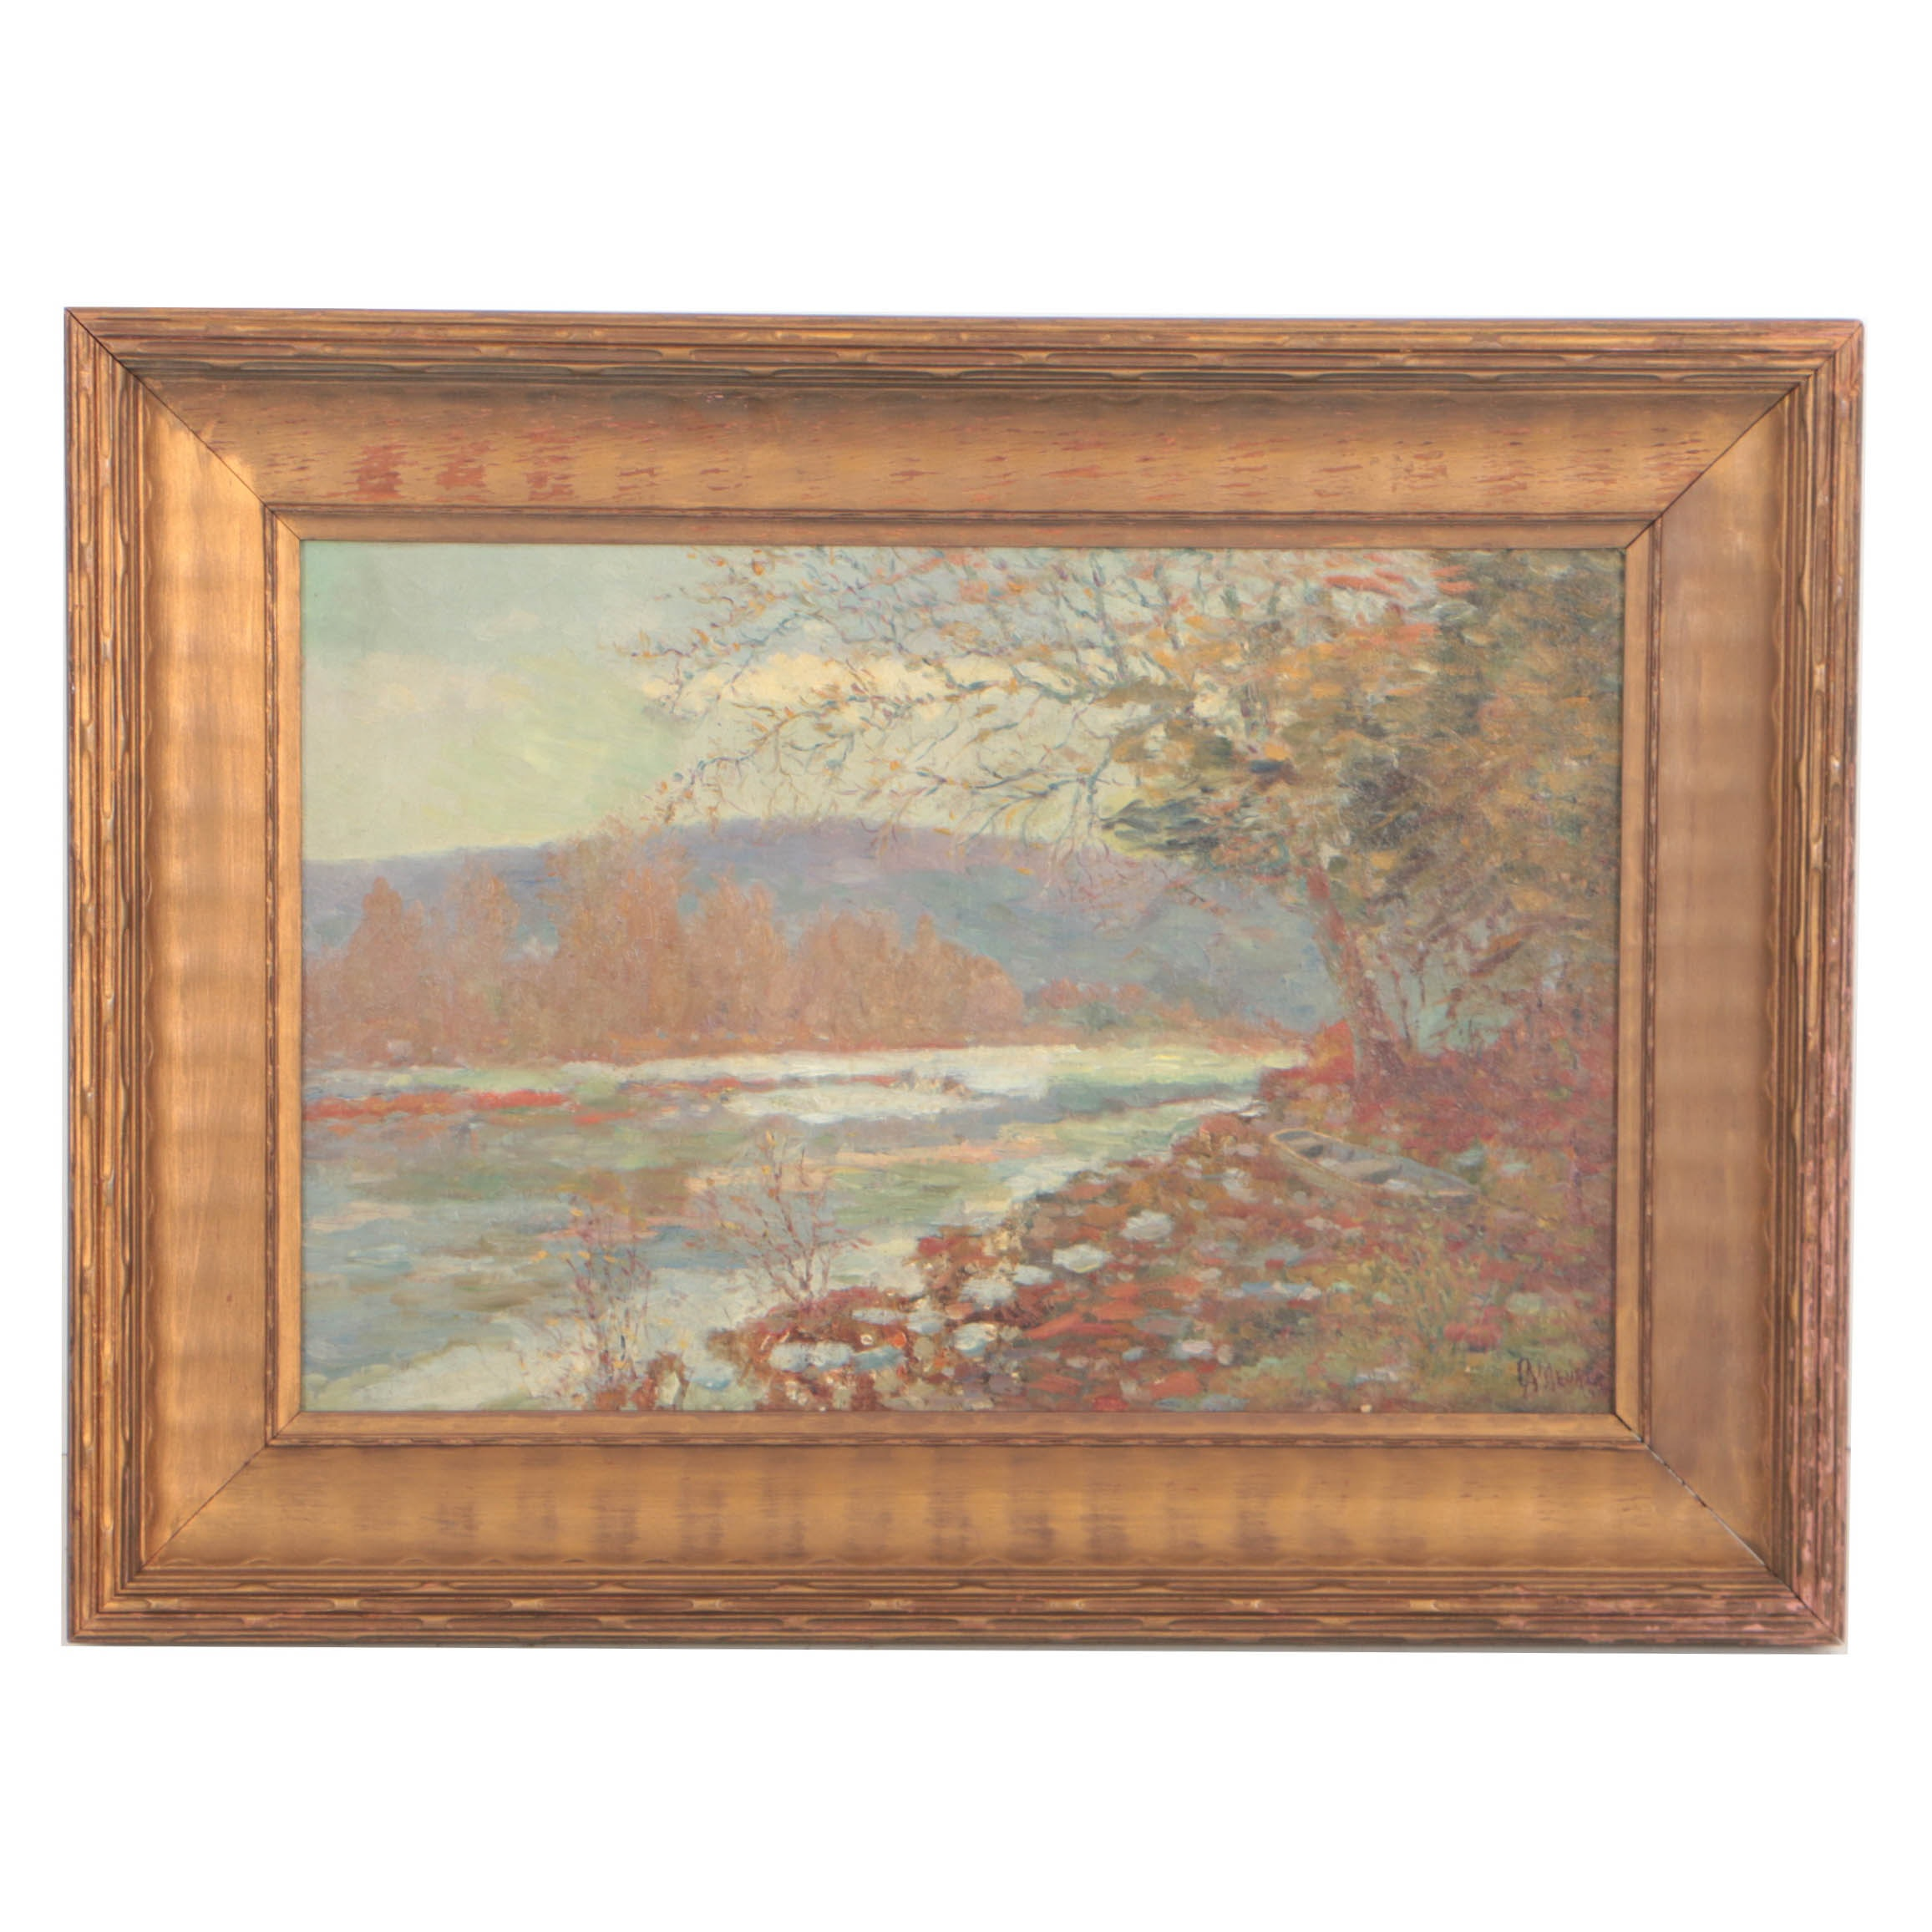 Charles Meurer Early 20th Century Impressionist Landscape Oil Painting